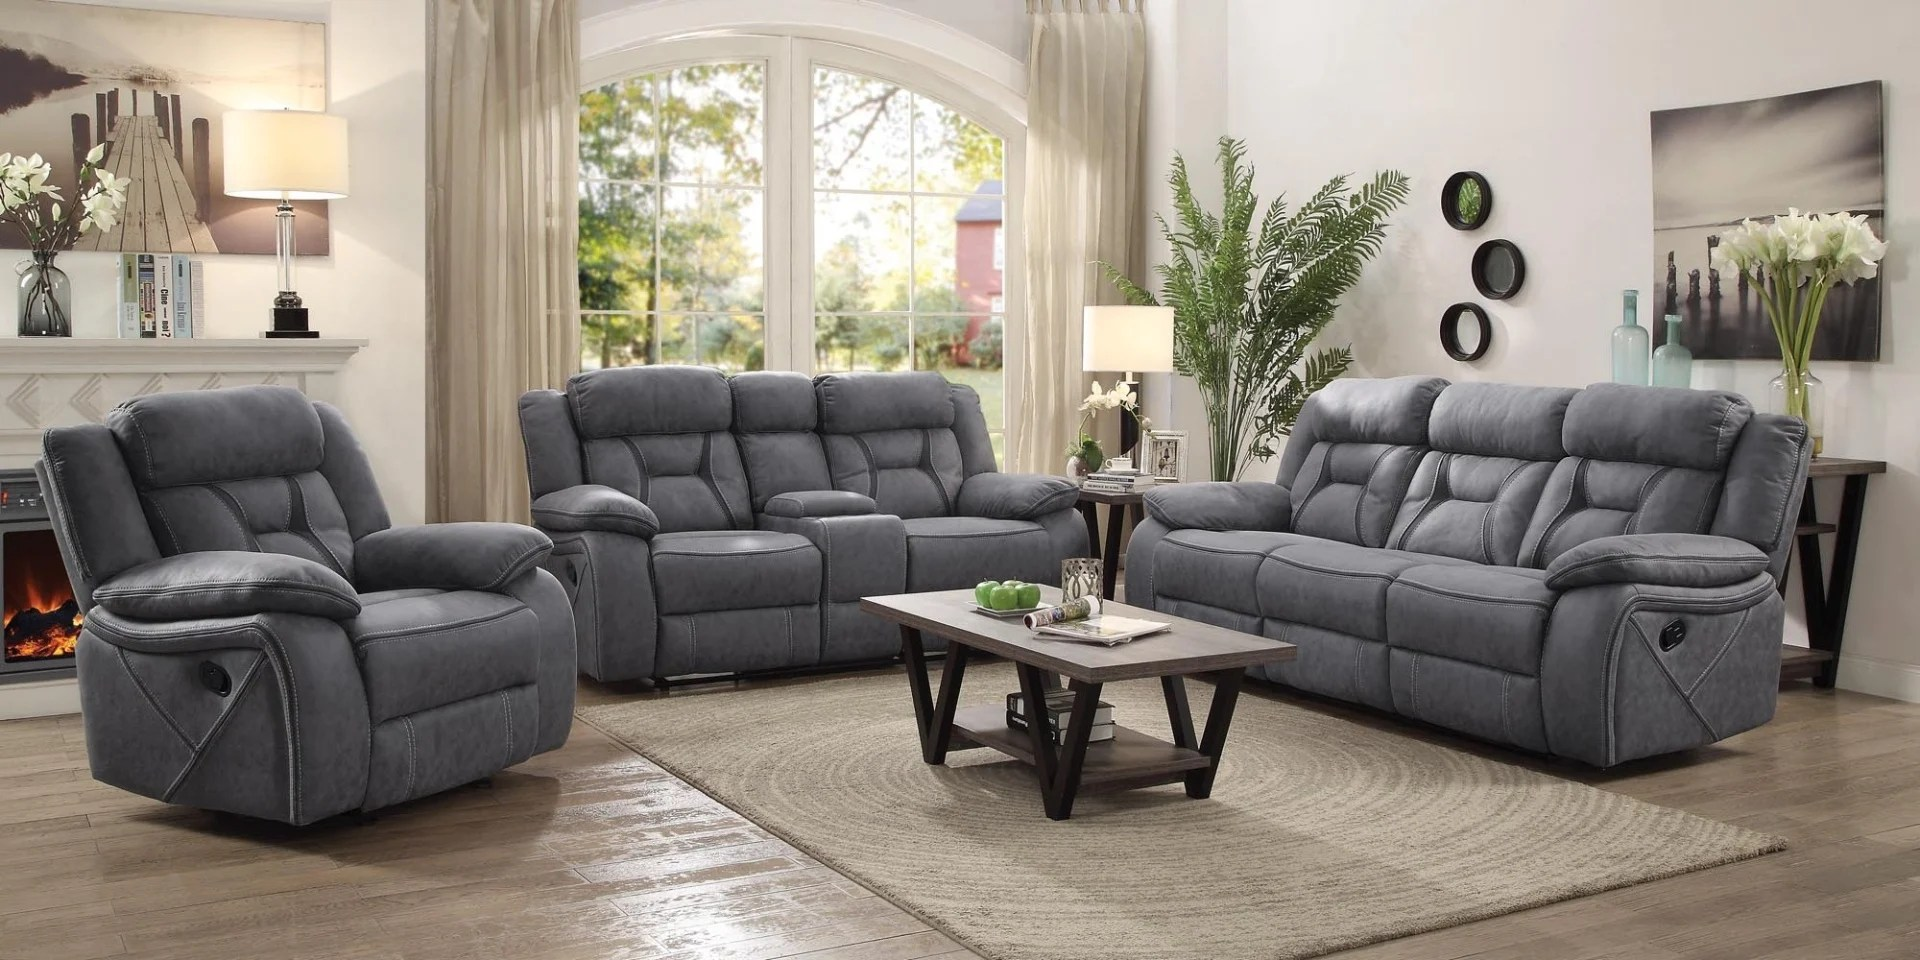 liberty 2 piece sofa and motion loveseat group in grey macys leather furniture clearance center groups